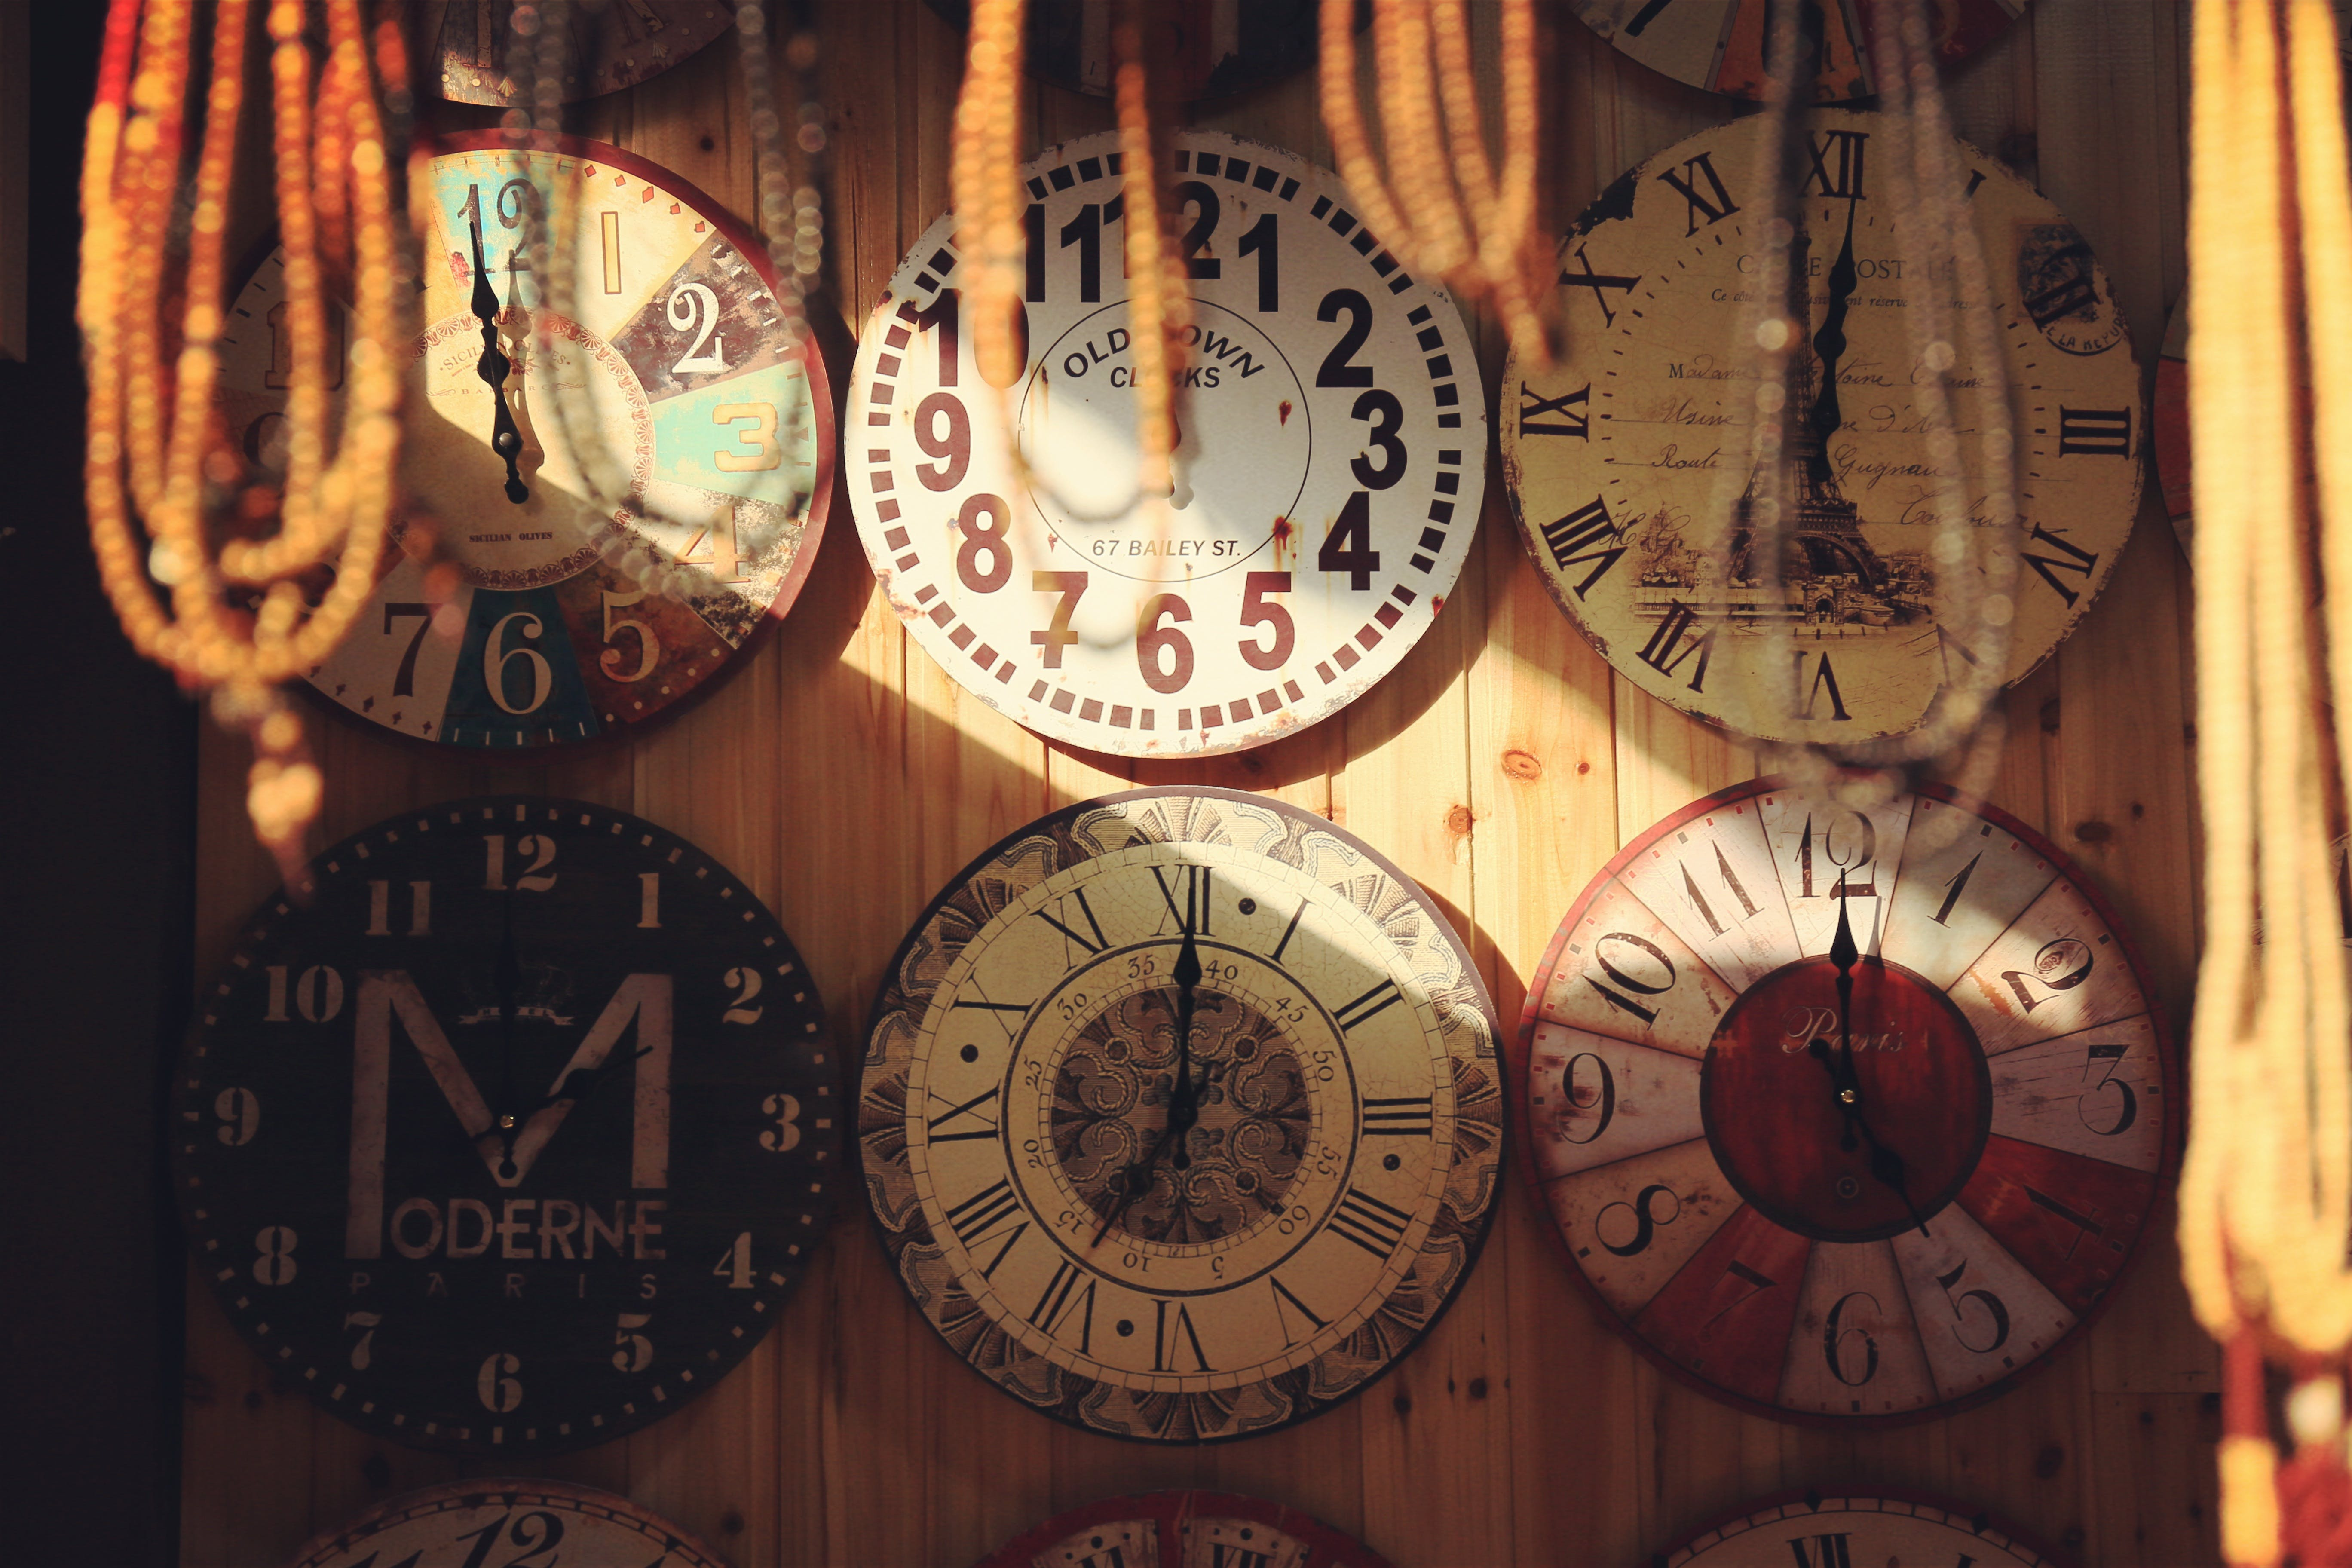 Beige and White Clocks on Wall